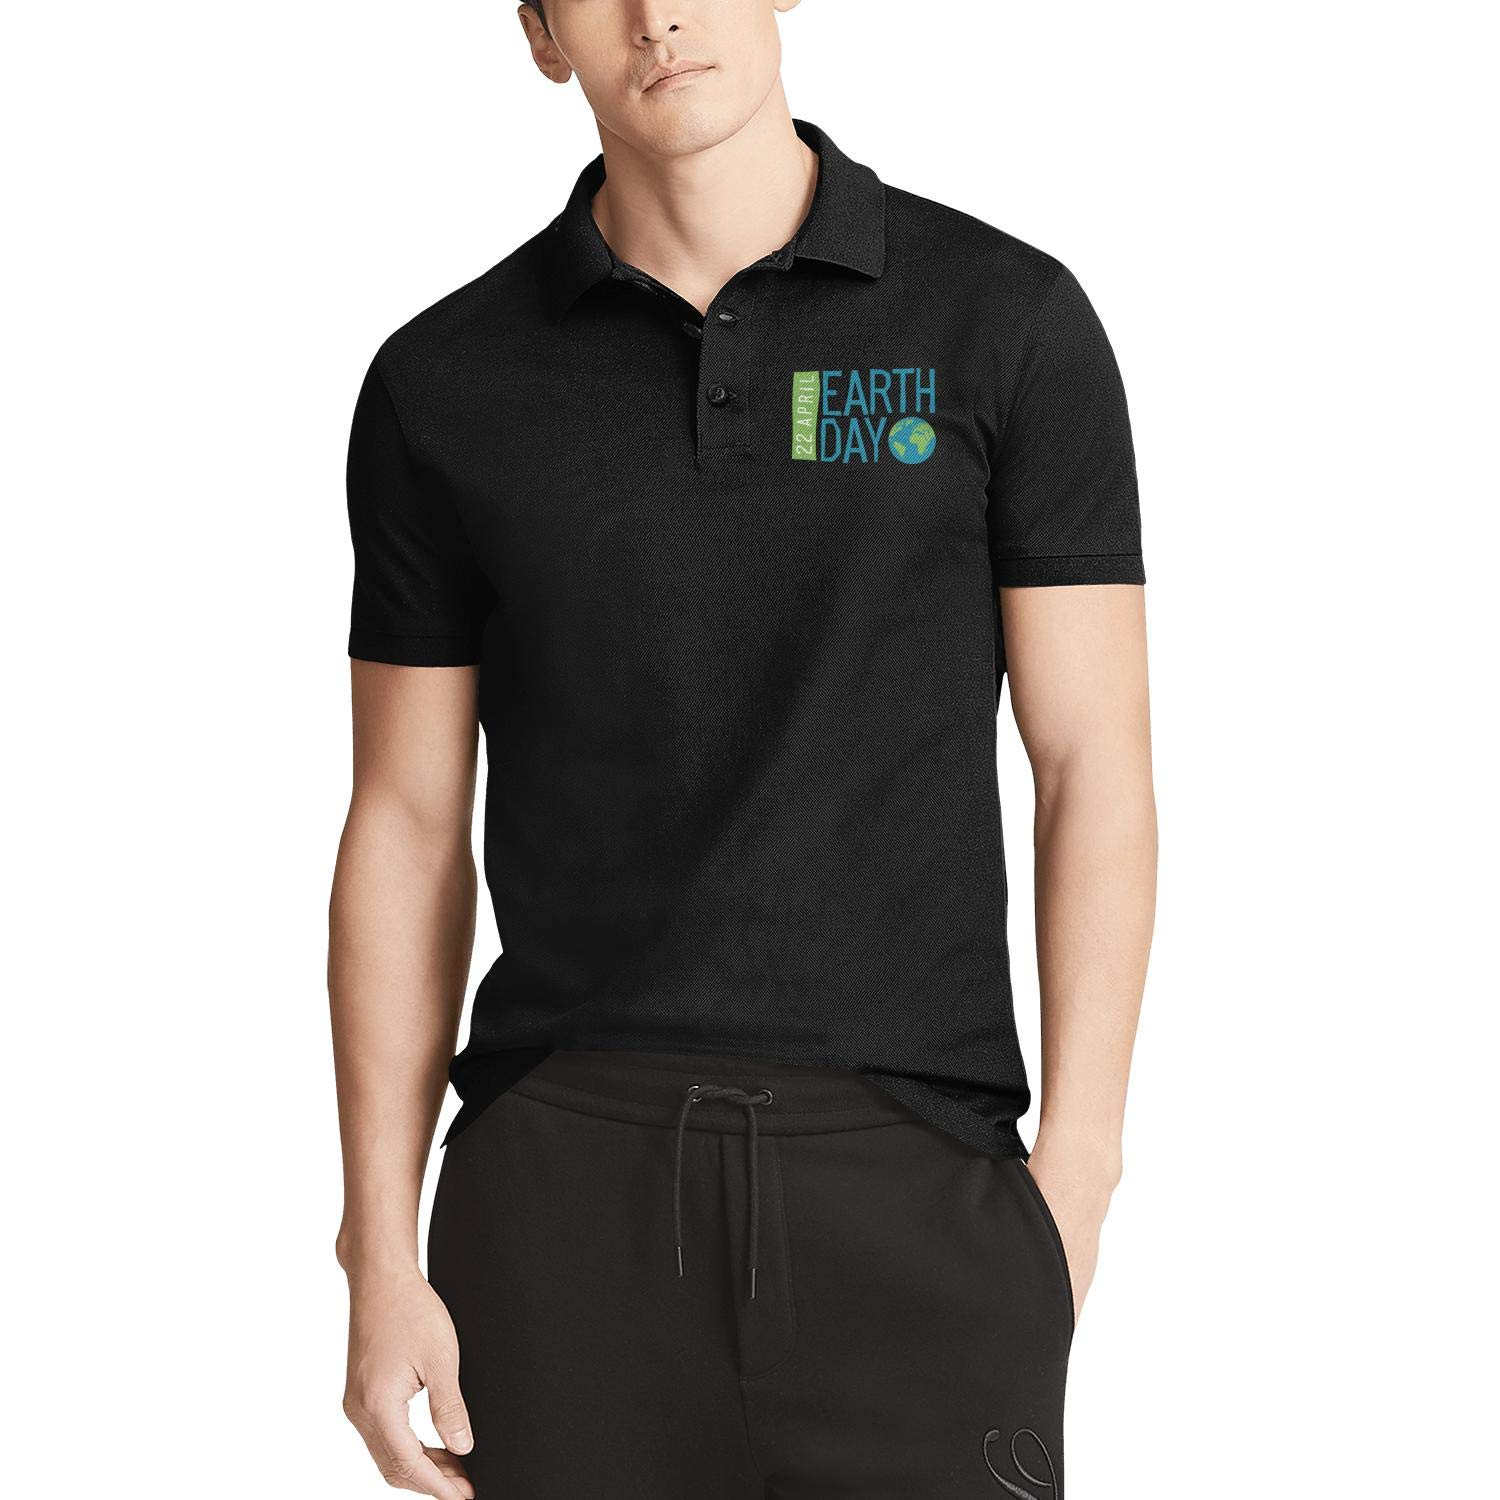 WYFEN Men Printed Polo Shirt 22 April Happy Earth Day Unique Short Sleeve Tee